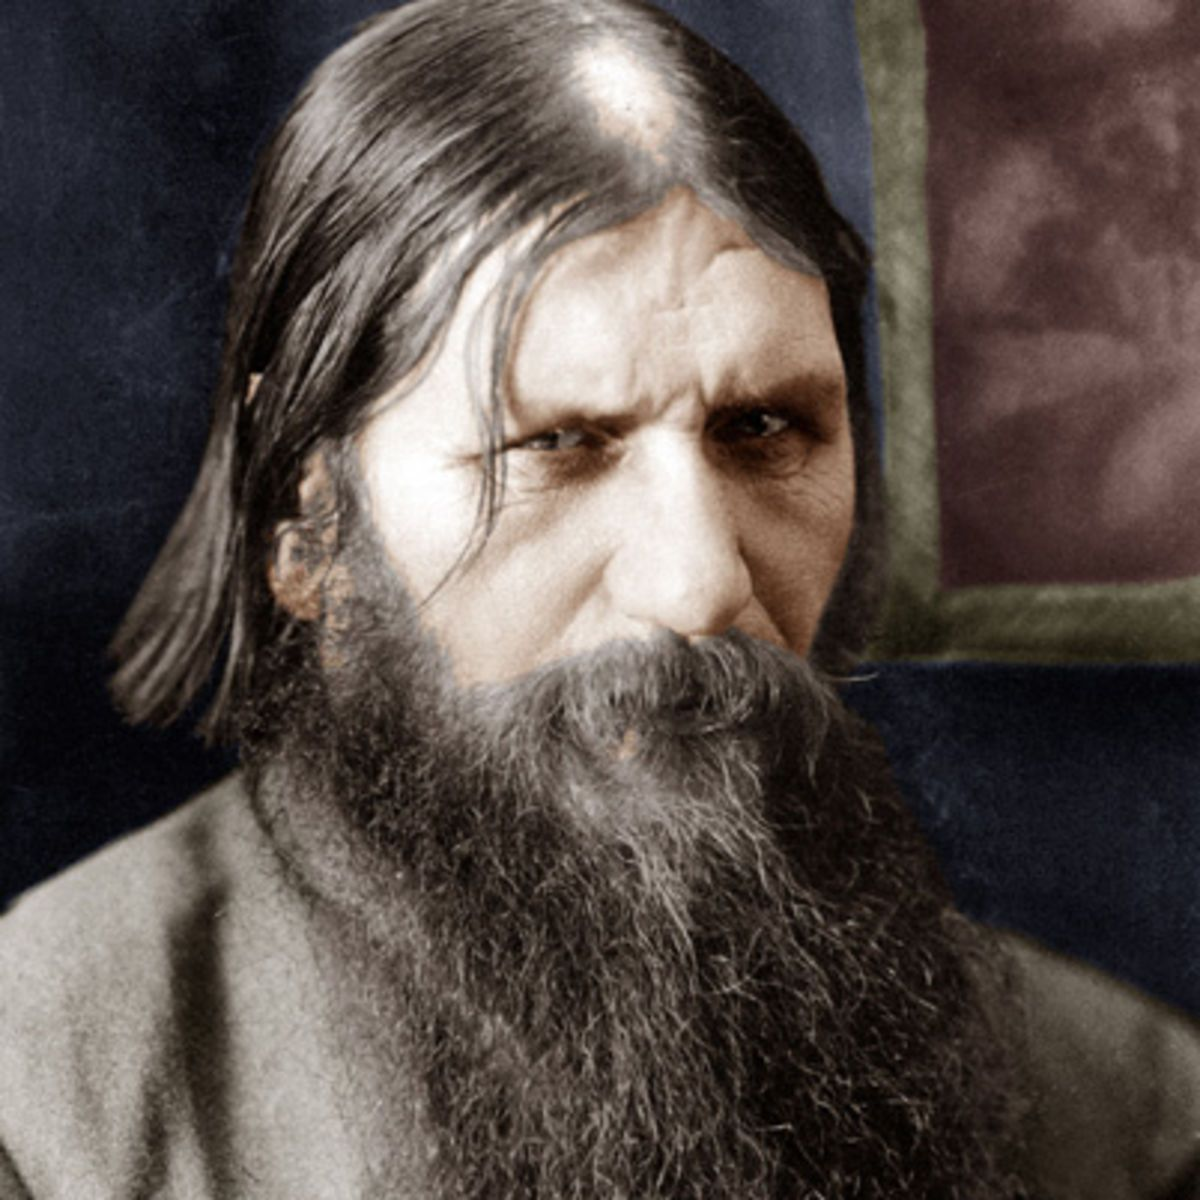 Grigori Rasputin Claimed To Be A Holy Man And Used His Power To Manipulate  Others And